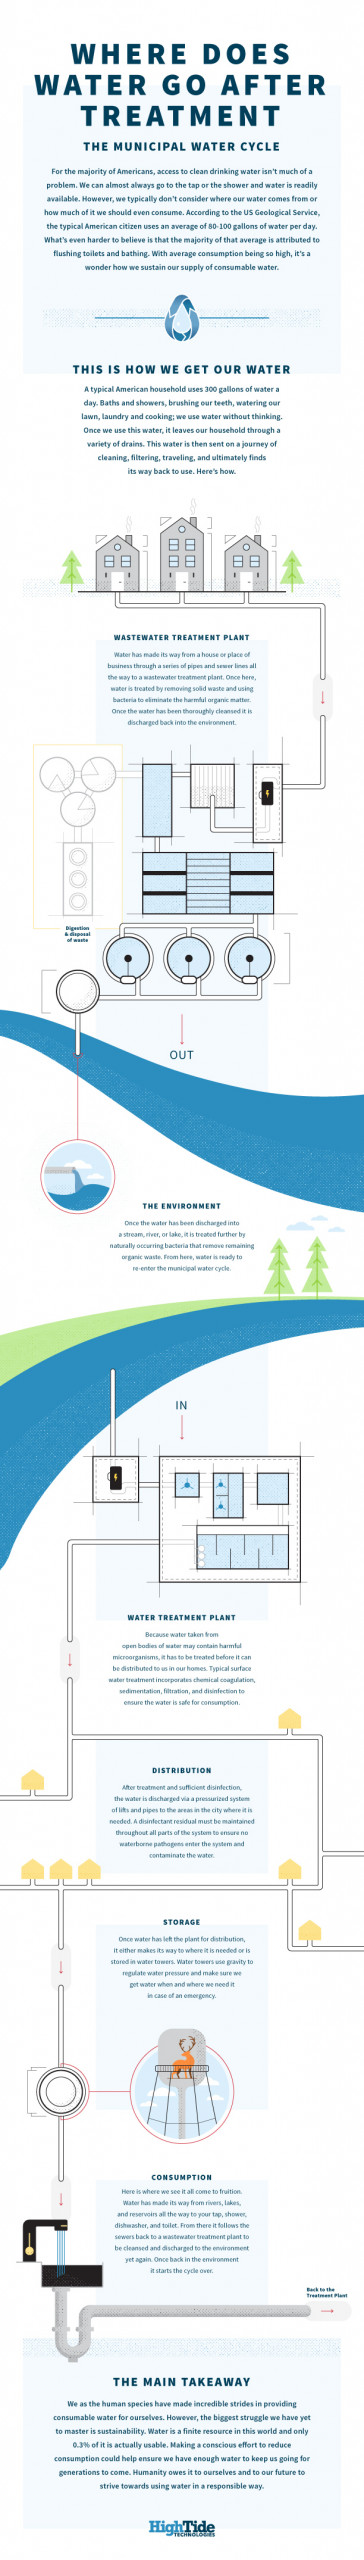 Municipal Water Cycle Infographic